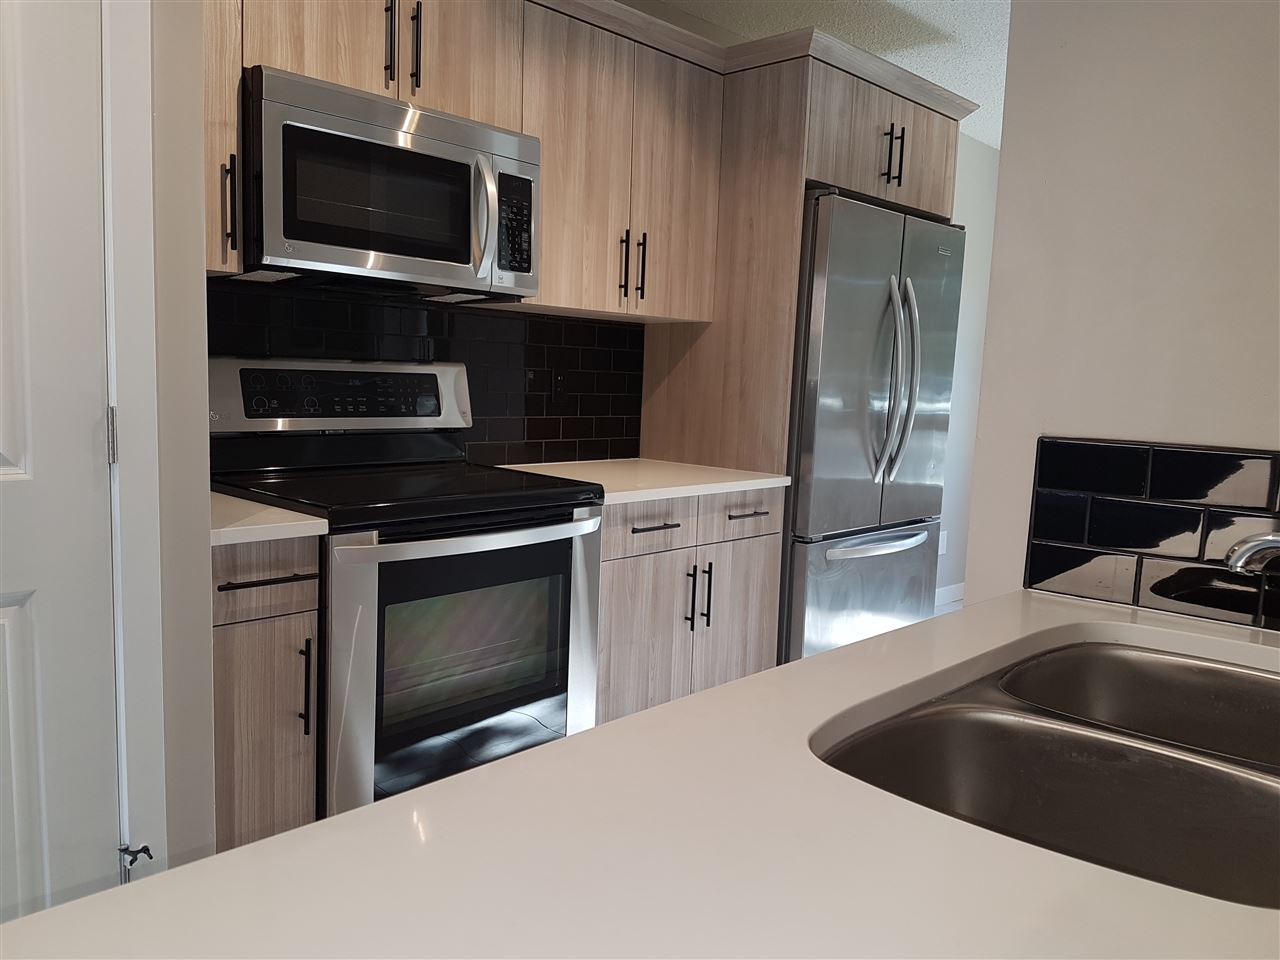 Incredible completely renovated townhouse in the perfect location.  Steps from Broadmoor lake (and Broadmoor lake park) or the Sherwood park mall, right down from the golf course or the Kinsmen leisure center.  Backing out onto a green space with soccer fields and schools just down the road. An amazing combination of quiet and peaceful mixed with convenience and proximity.  Not only is the location amazing but it has just as much if not more to offer inside! This townhouse has been completely redone.  New tile and carpet floors, high end kitchen and bathroom finishing (even quartz counter-tops) as well as the details from the custom built in cabinets to the high end light fixtures, this home is ready to move in and enjoy.